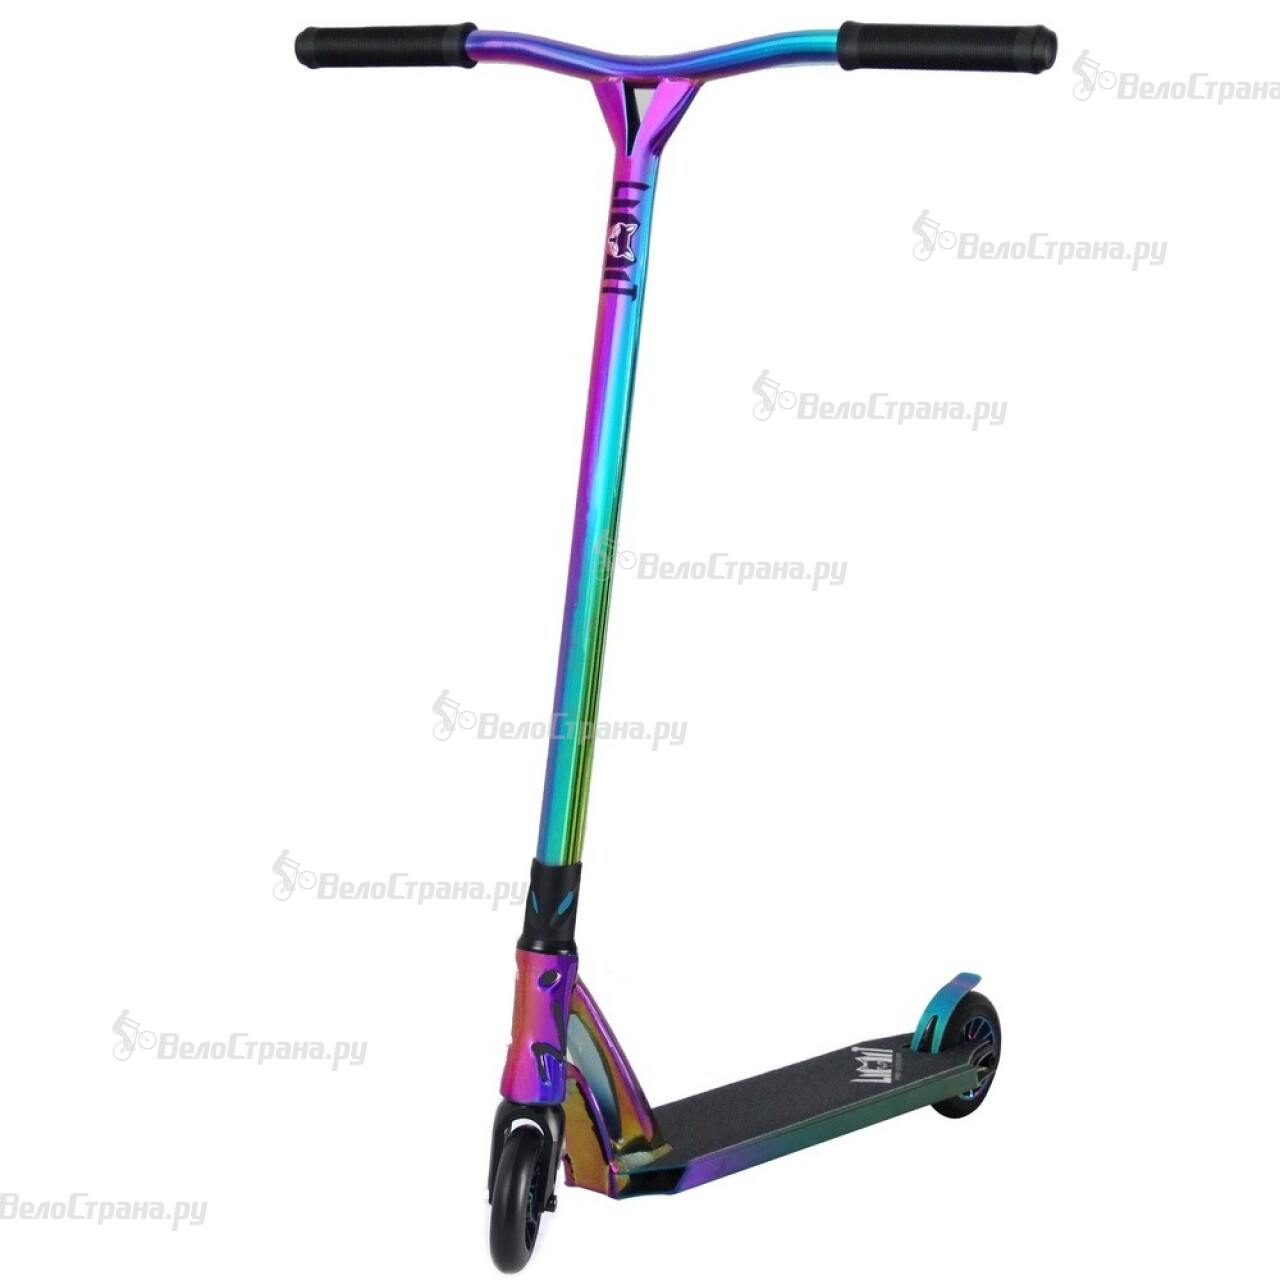 Самокат Limit LMT06 PRO STUNT SCOOTER NEO CHROME